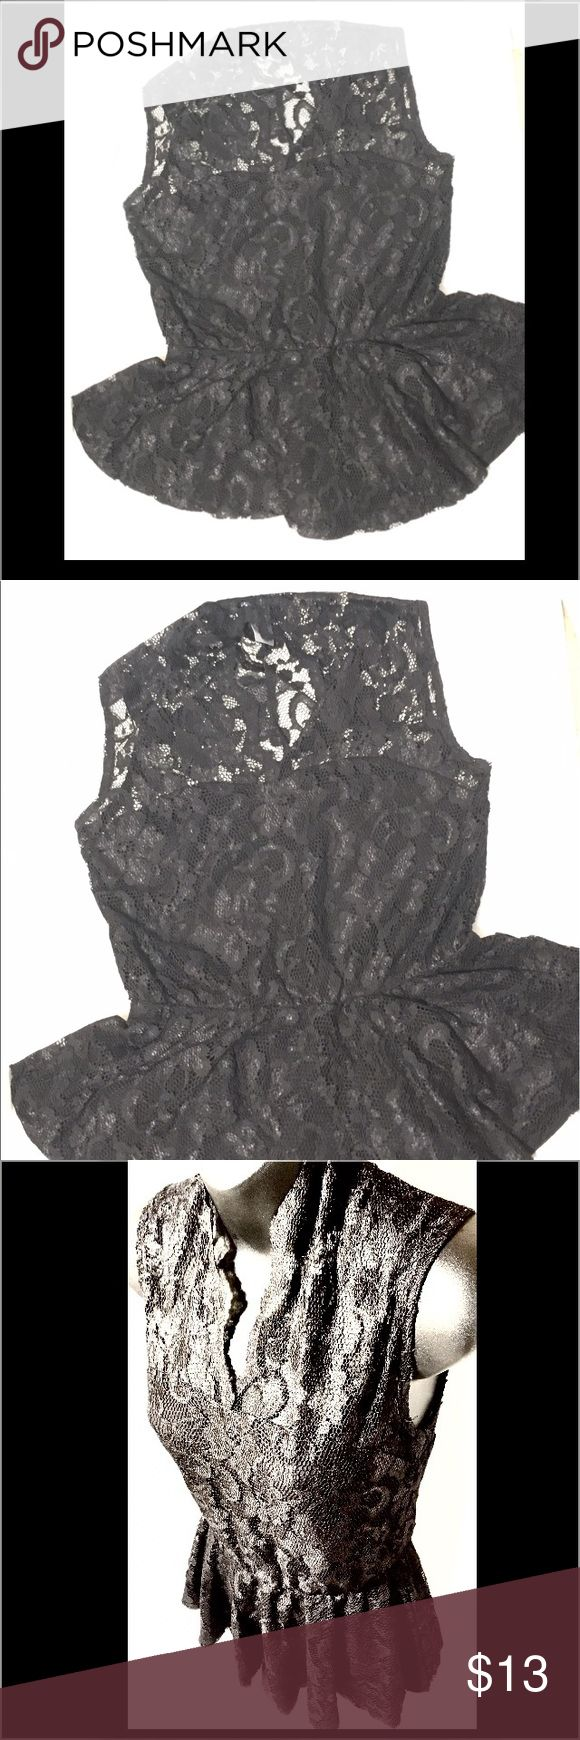 Lace Peplum Top Excellent Condition, Like New! Missguided Tops